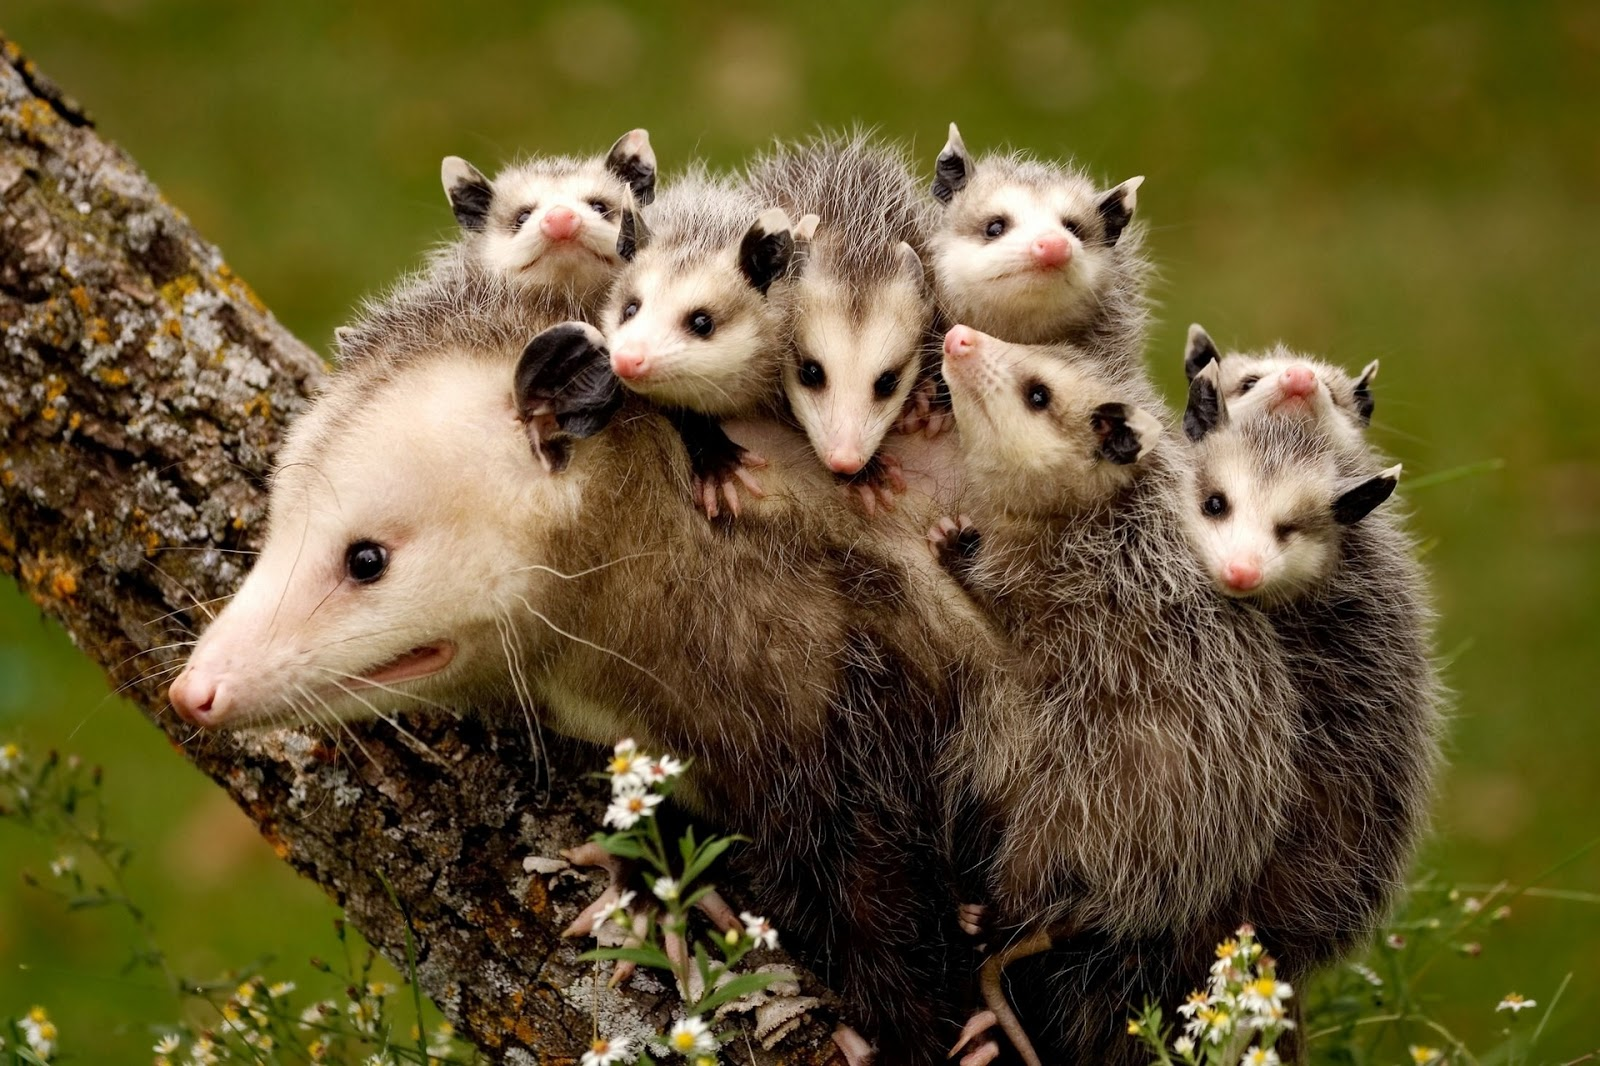 wildewood wonders that opossum with a toothy smile is a good neighbor